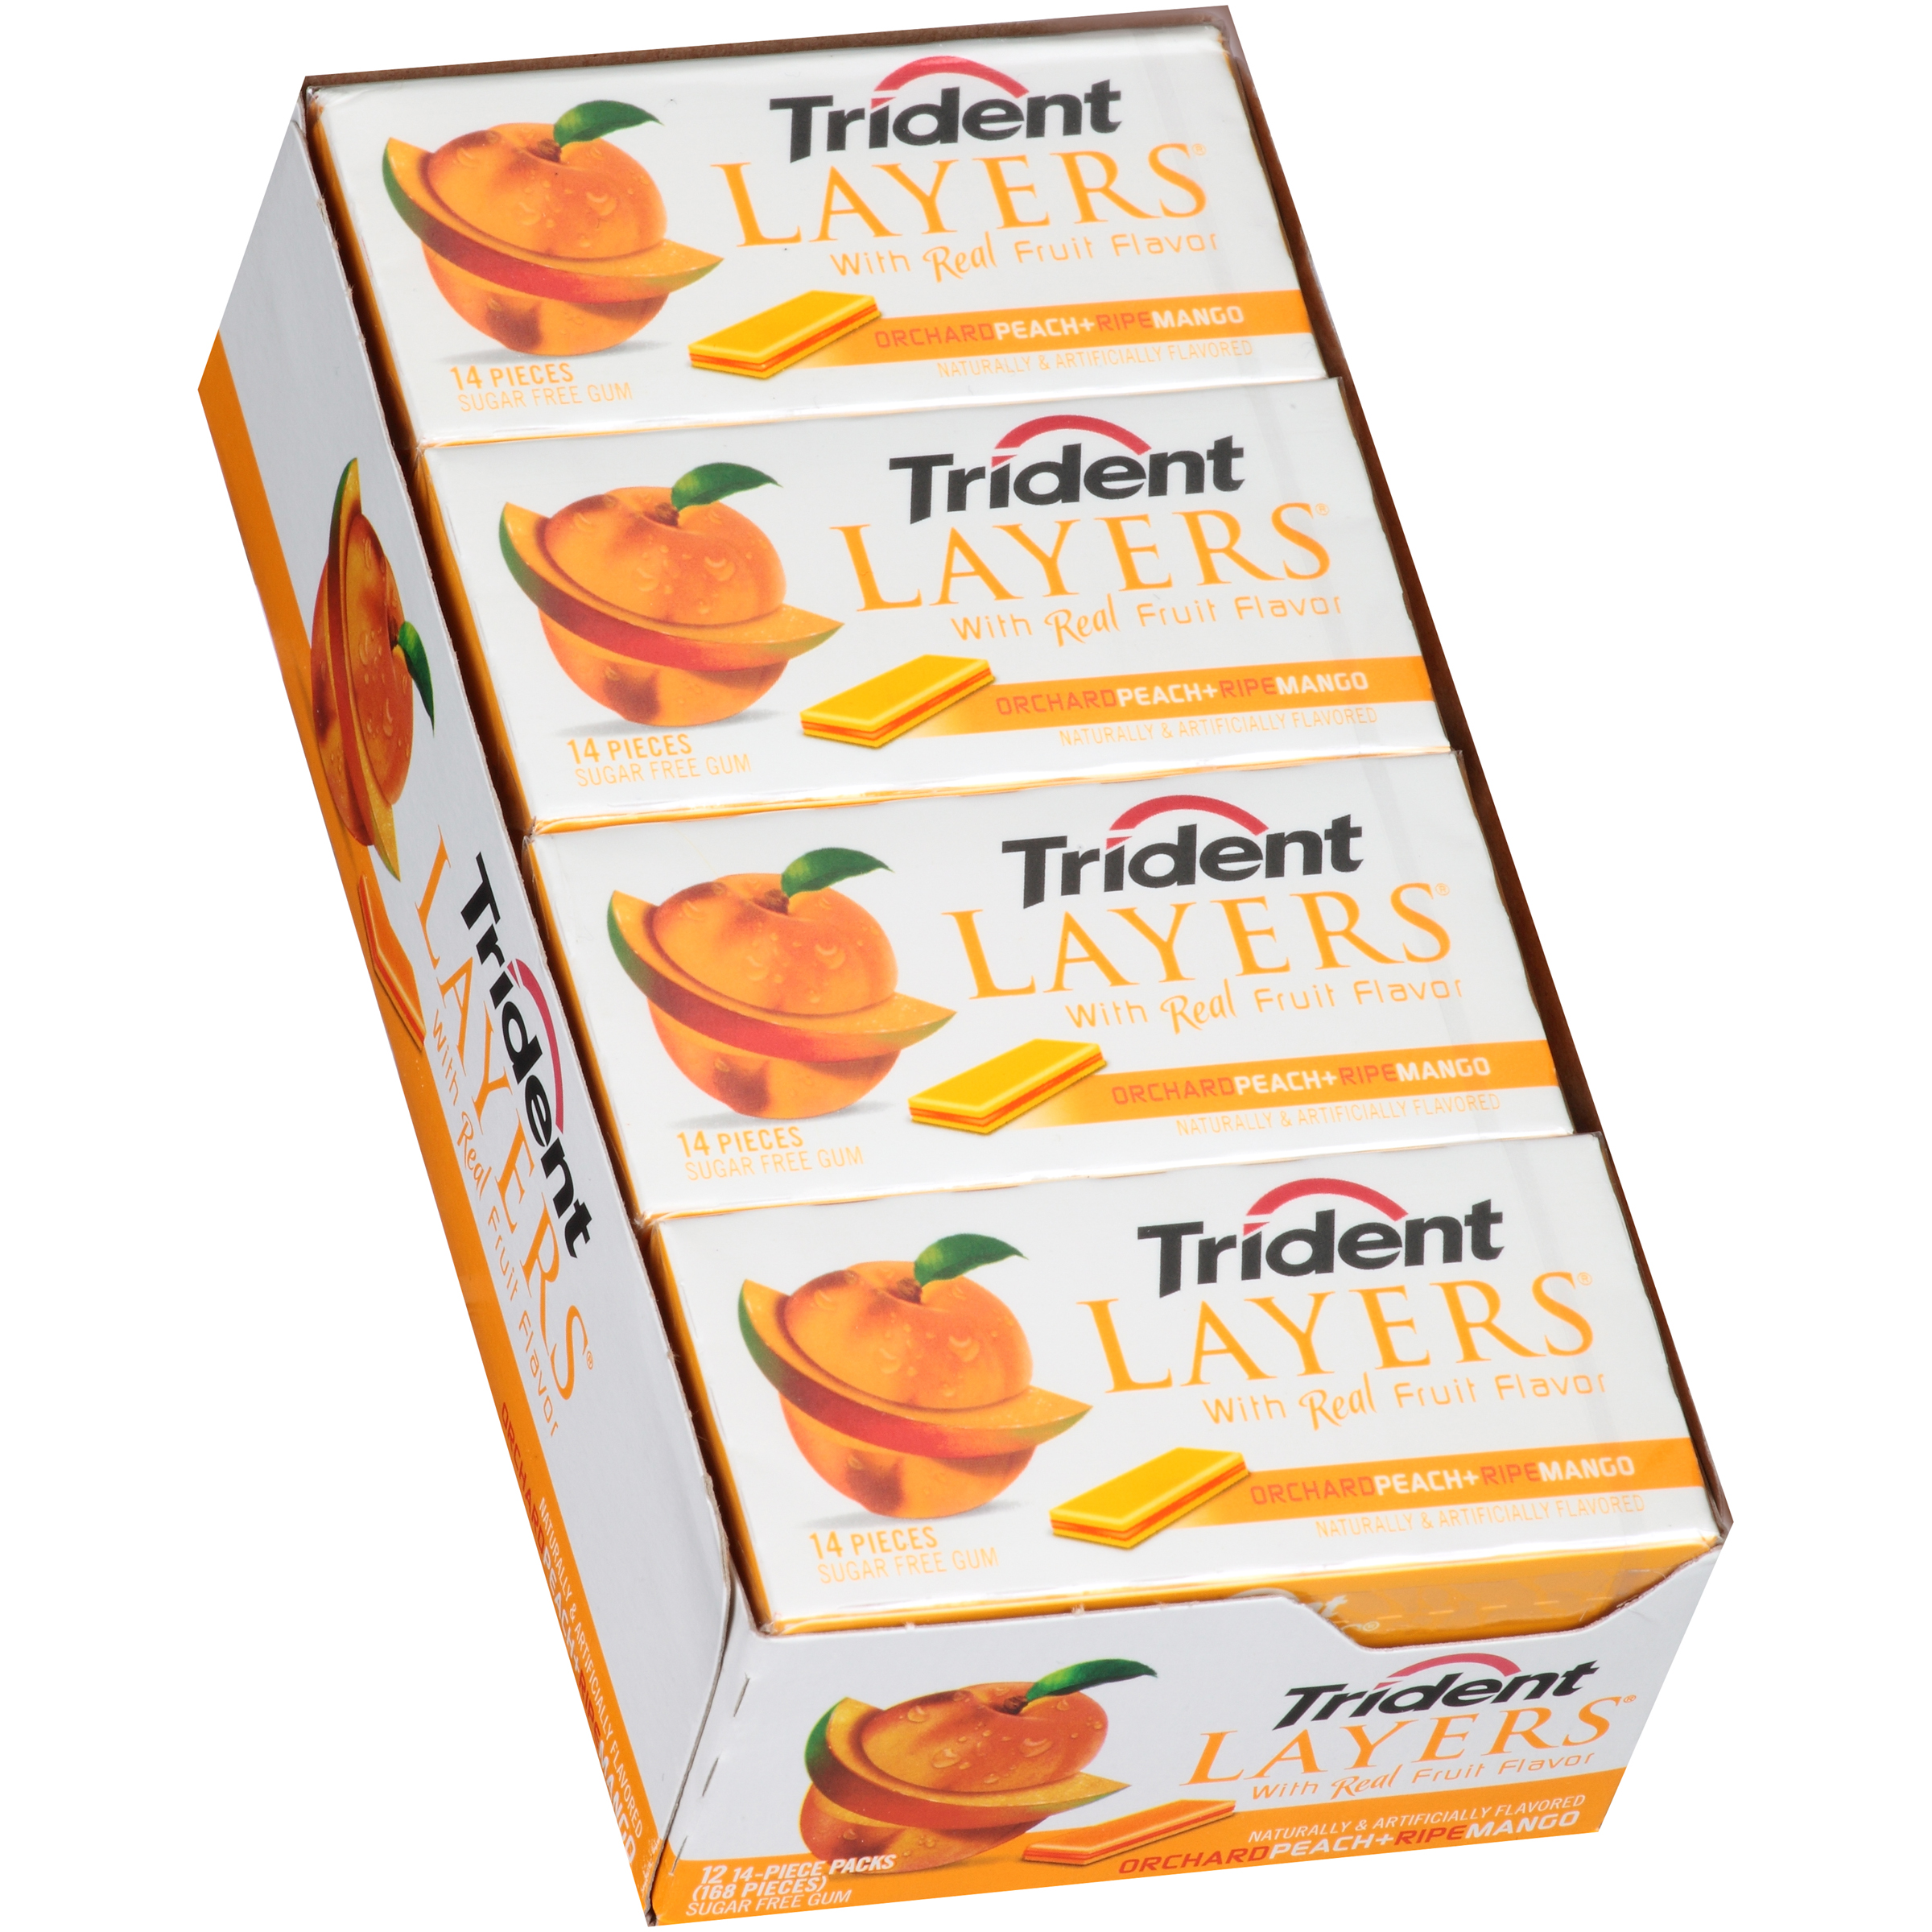 Trident Layers Gum Orchard Peach/Ripe Mango Sugar Free, 14 Piece Packs, 12 Count